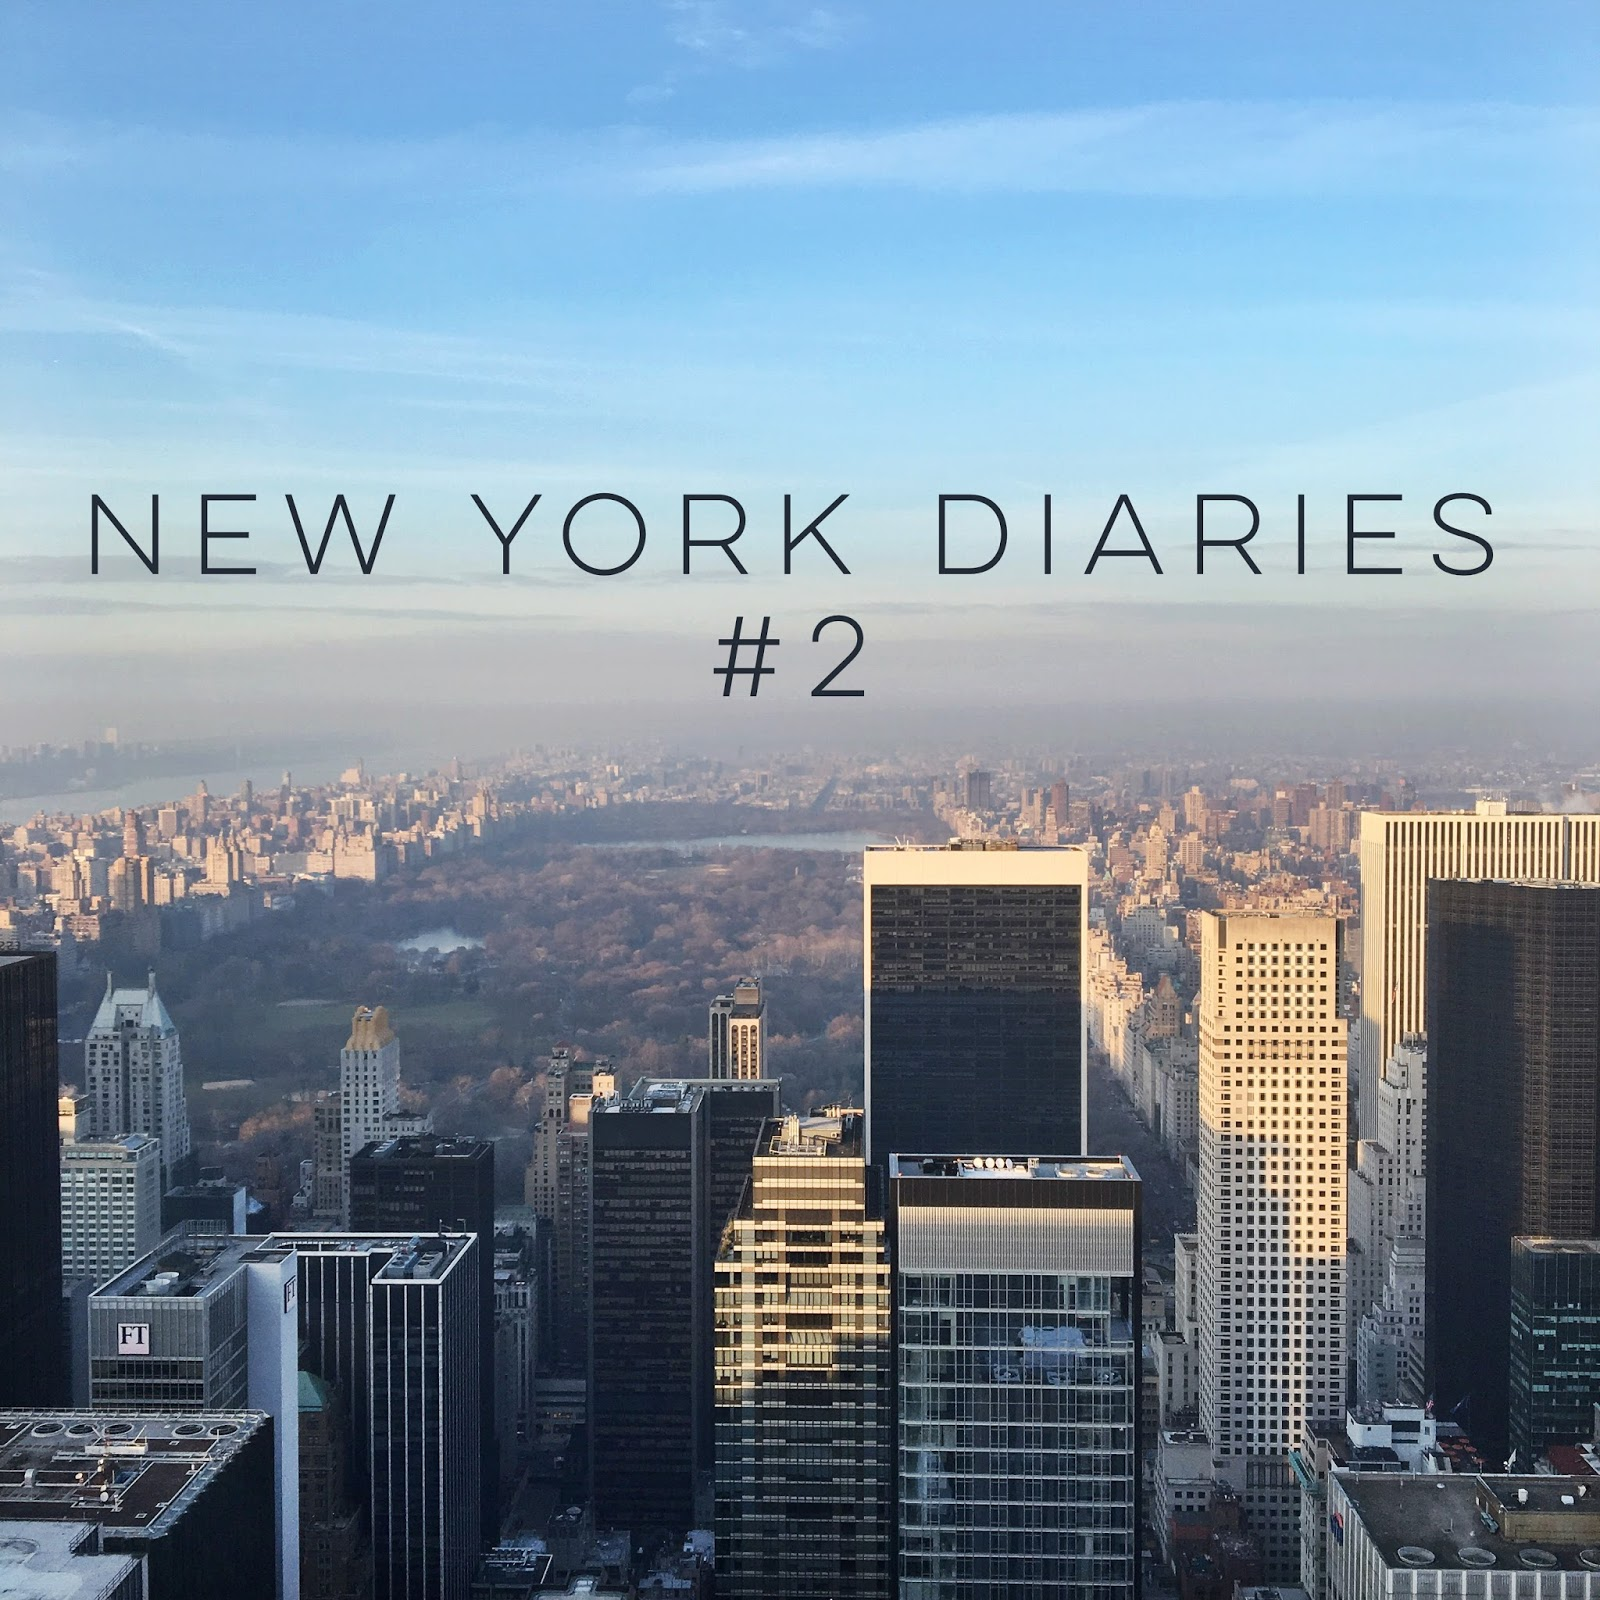 The New York Diaries #2